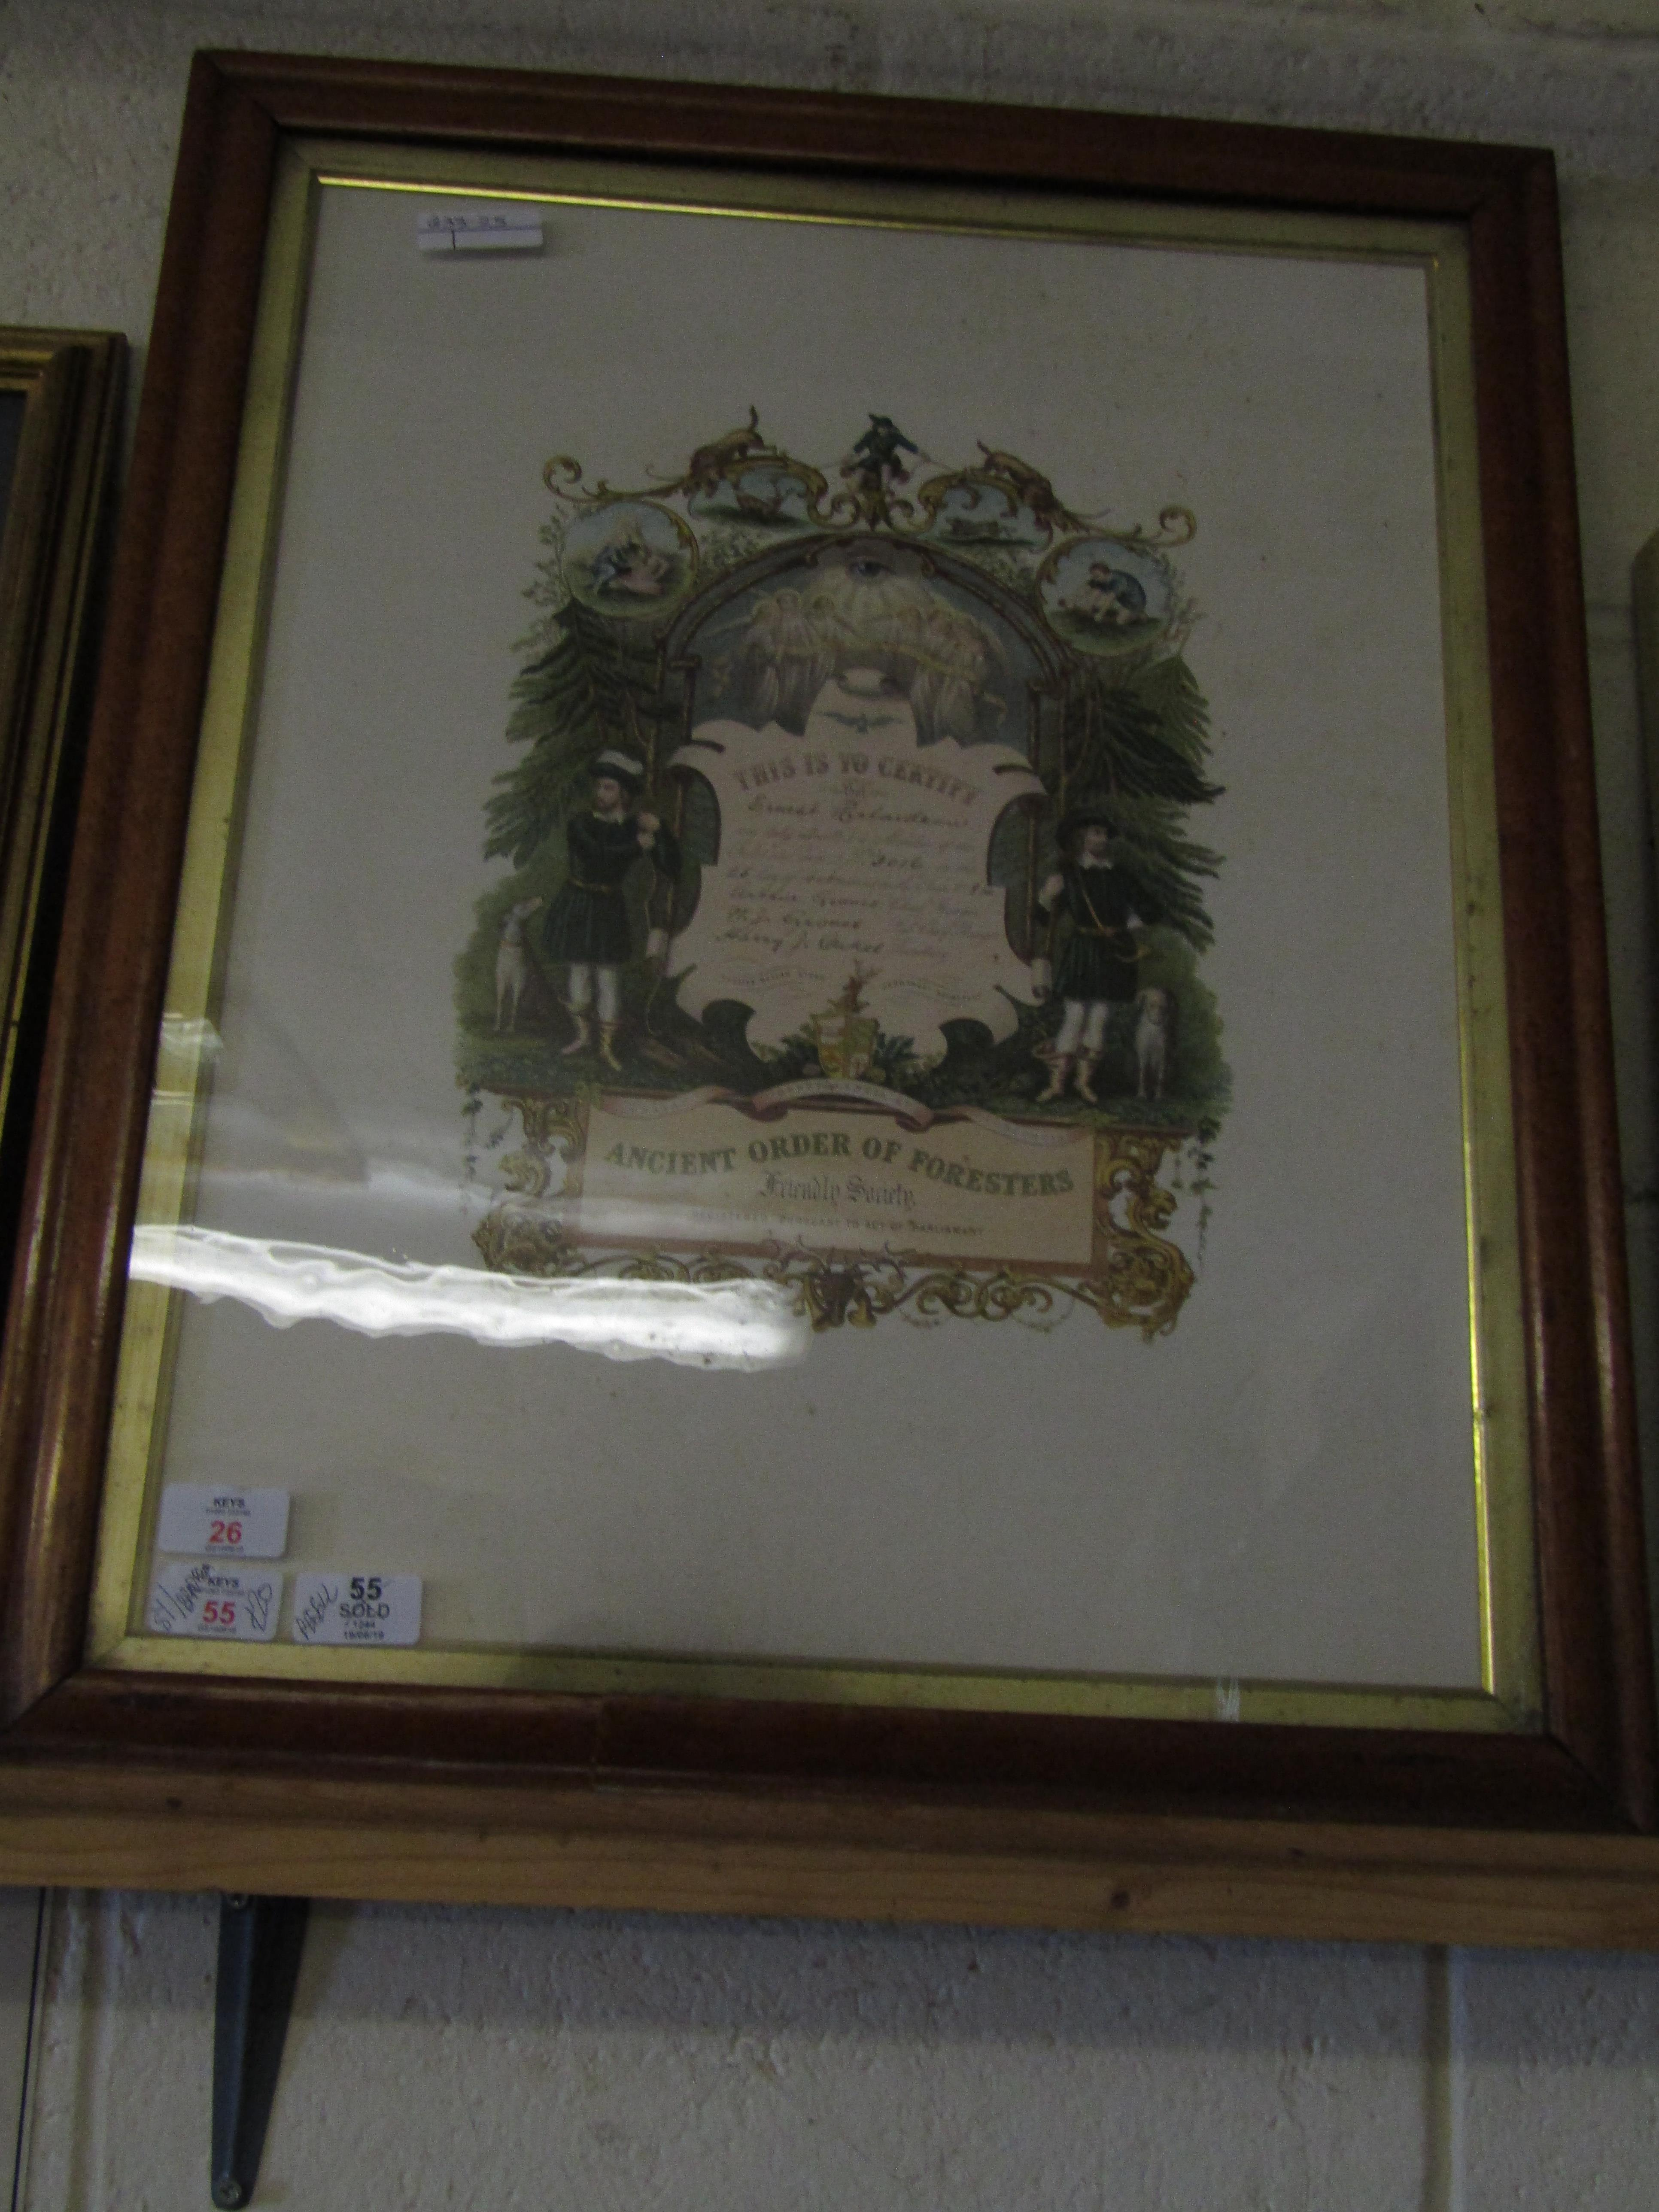 Lot 26 - FRAMED ANCIENT ORDER OF FORESTERS